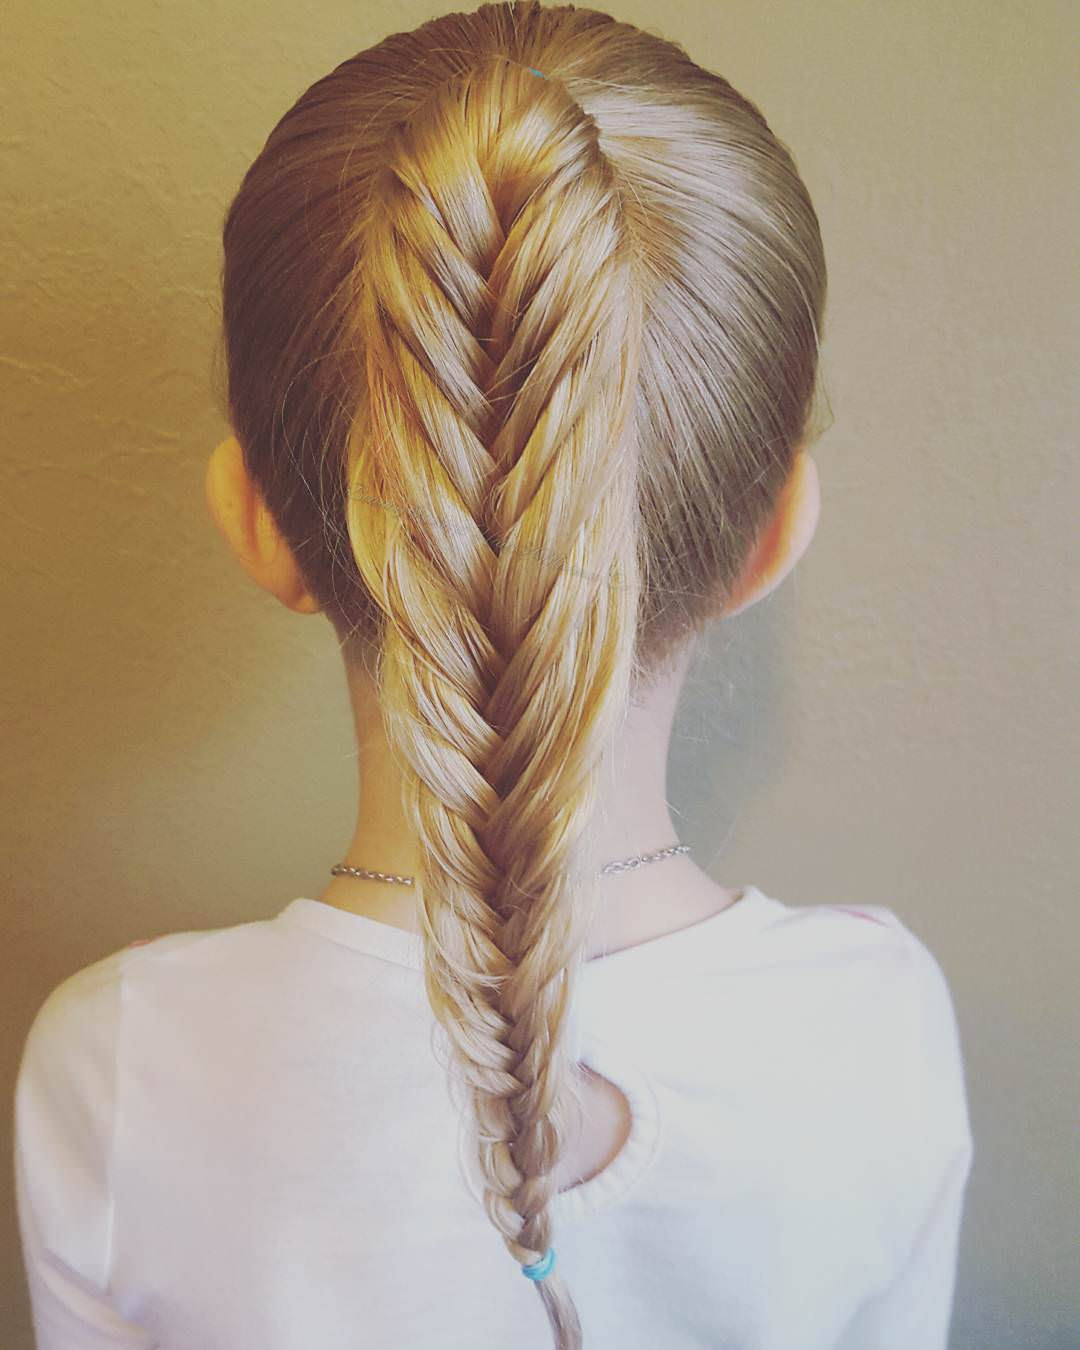 Dazzle with a Fishtail